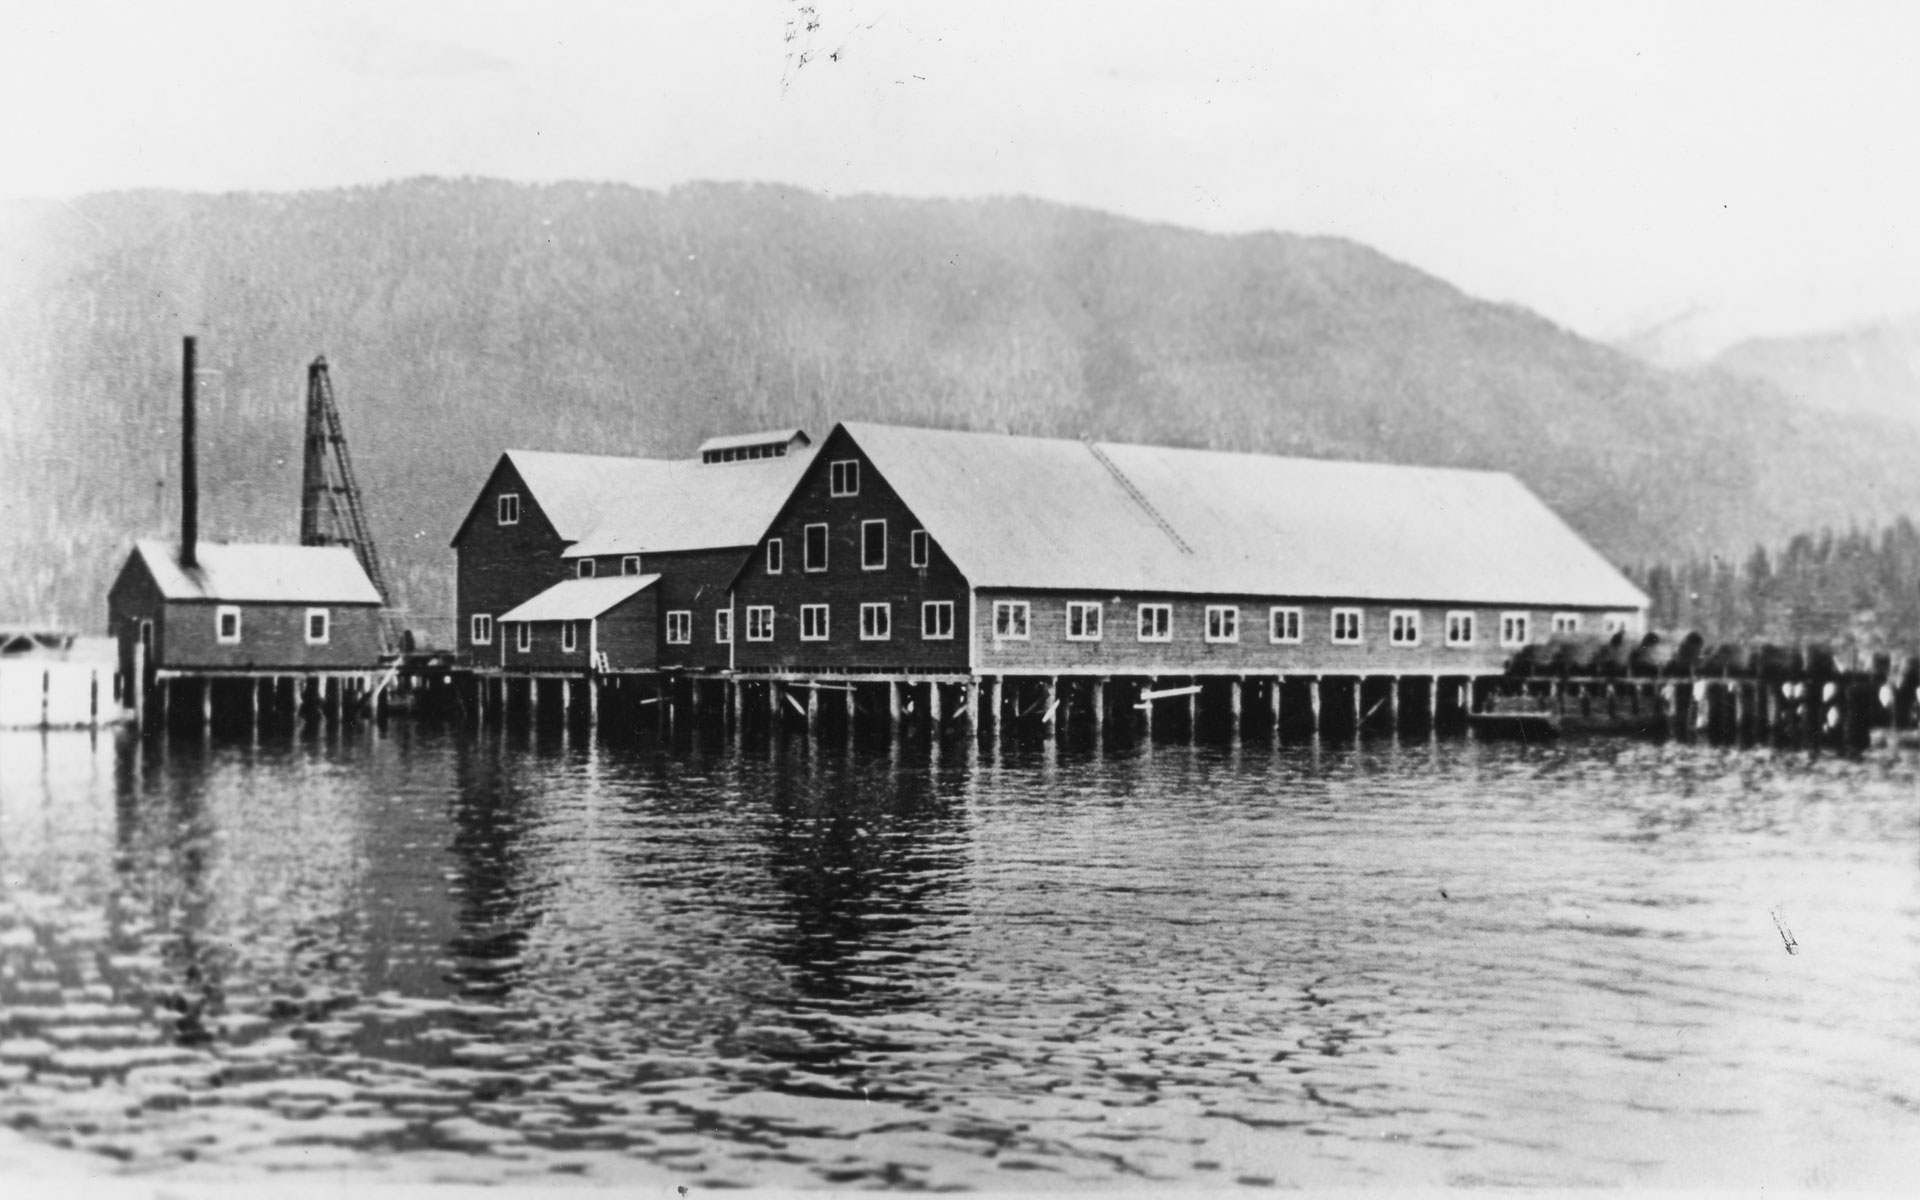 Cannery buildings on pilings over the water.